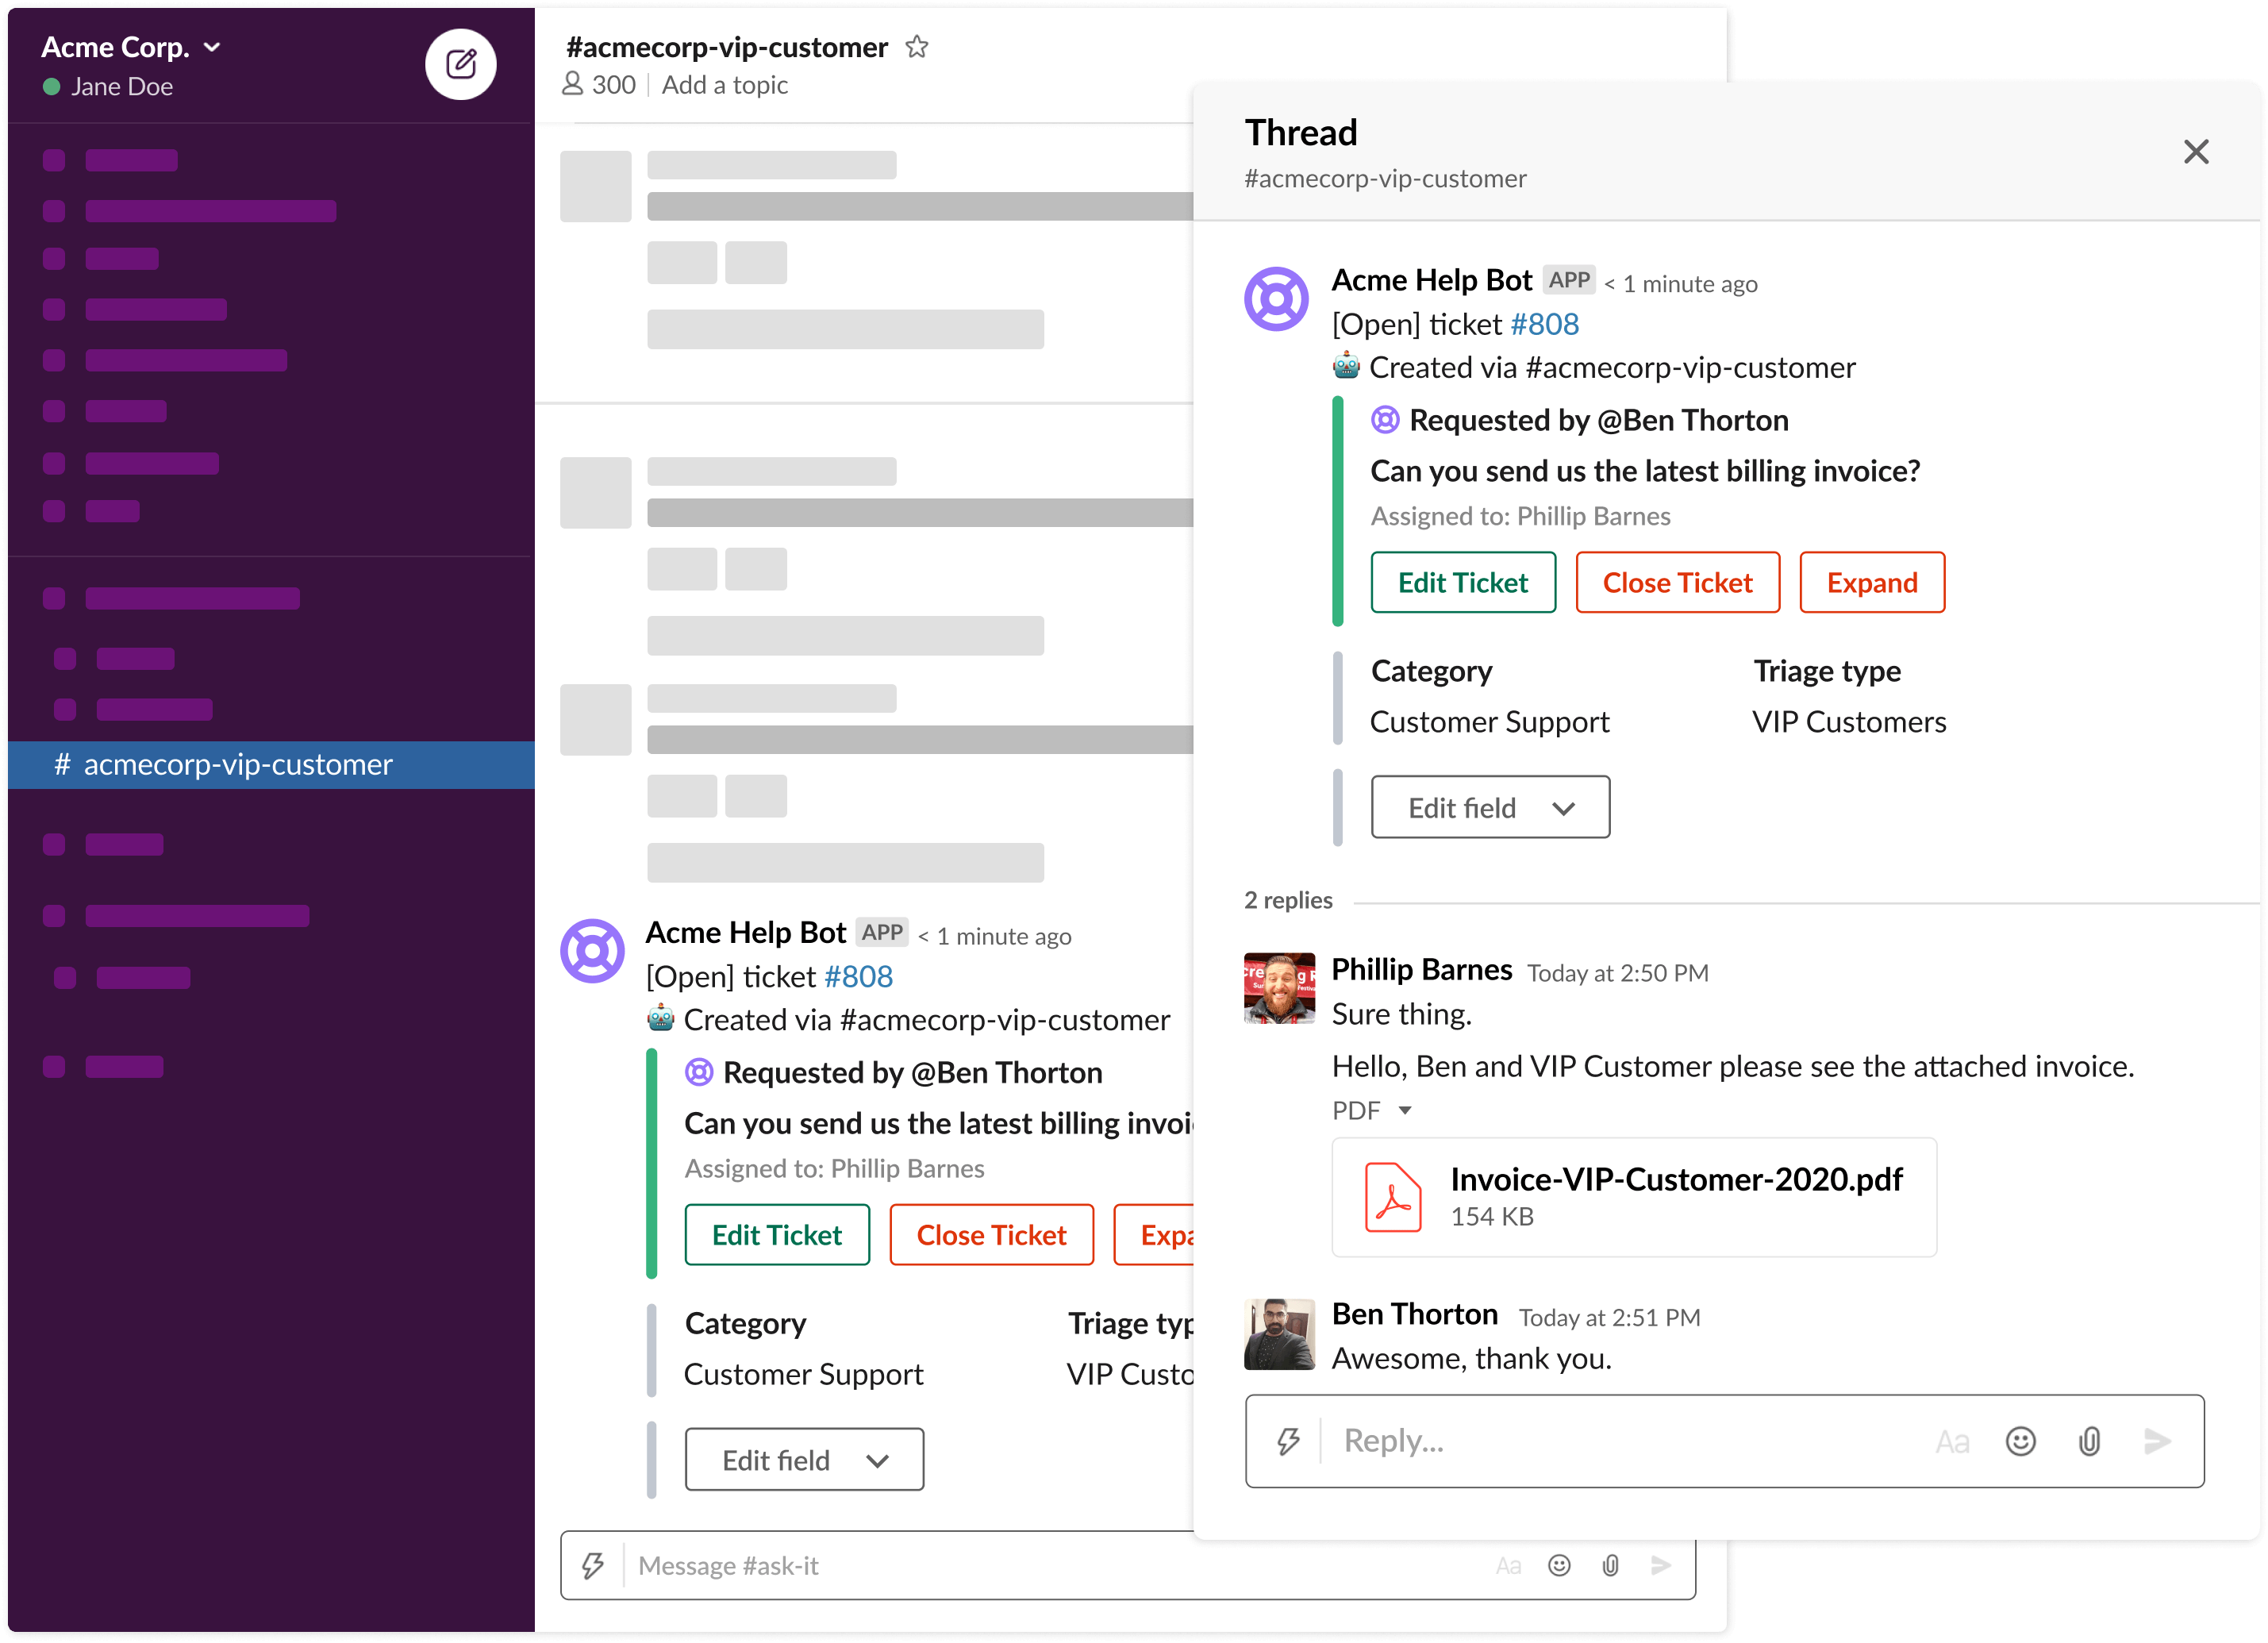 Turn messages into tickets